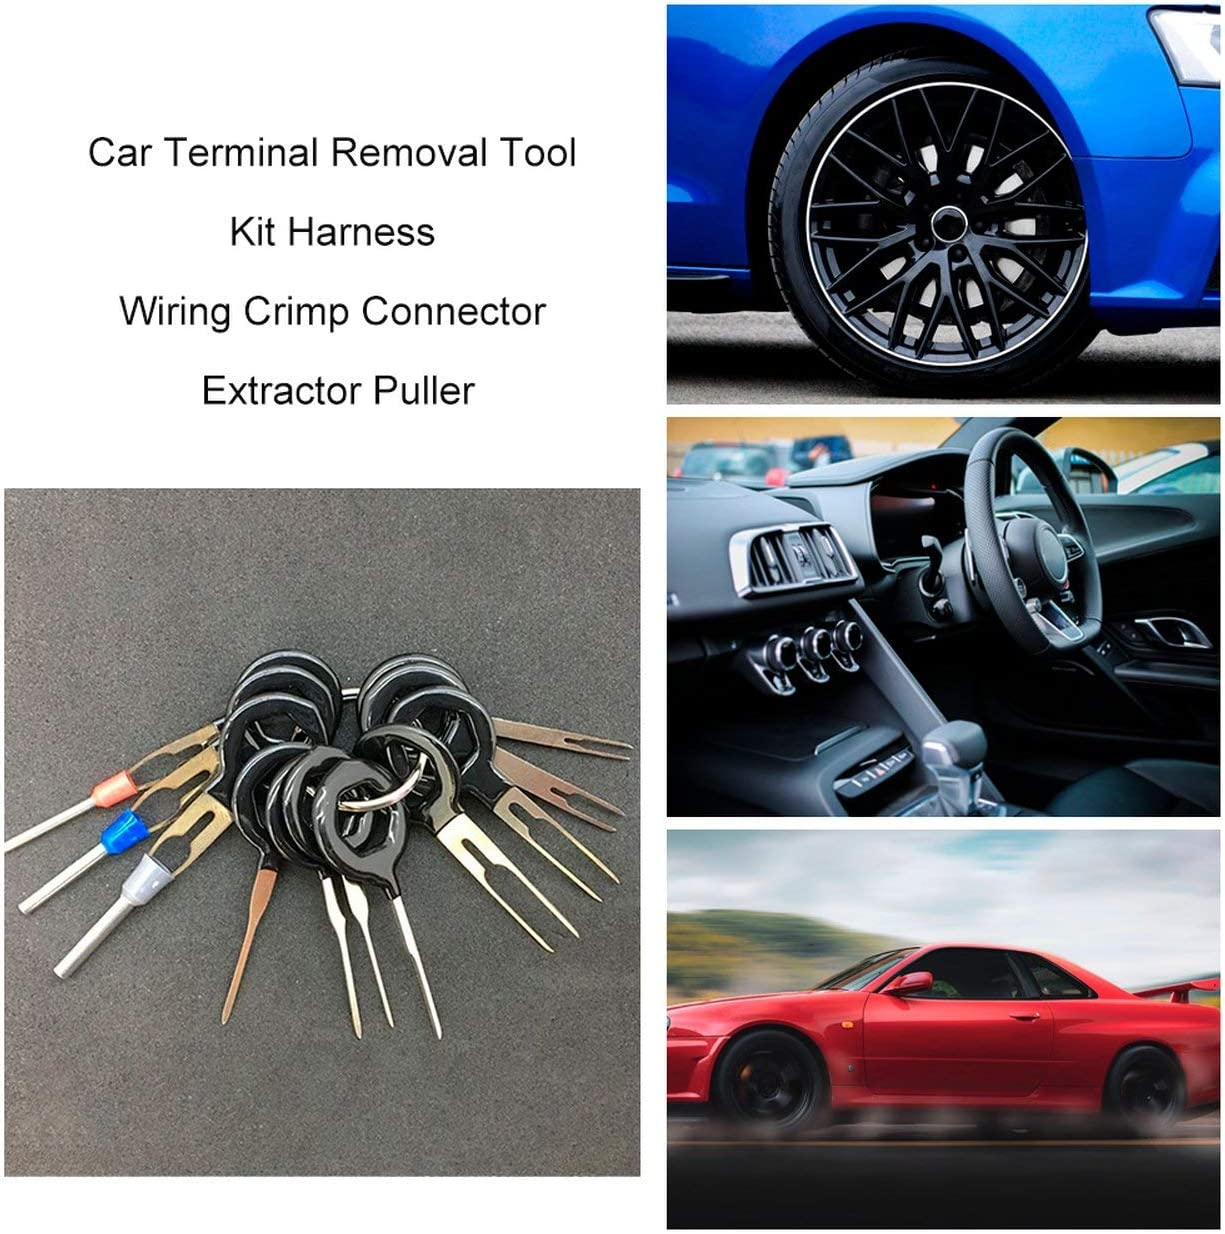 Lorenlli Car Terminal Removal Tool Kit Harness Wiring Crimp Connector Extractor Puller Release Pin Professional Repair Tools